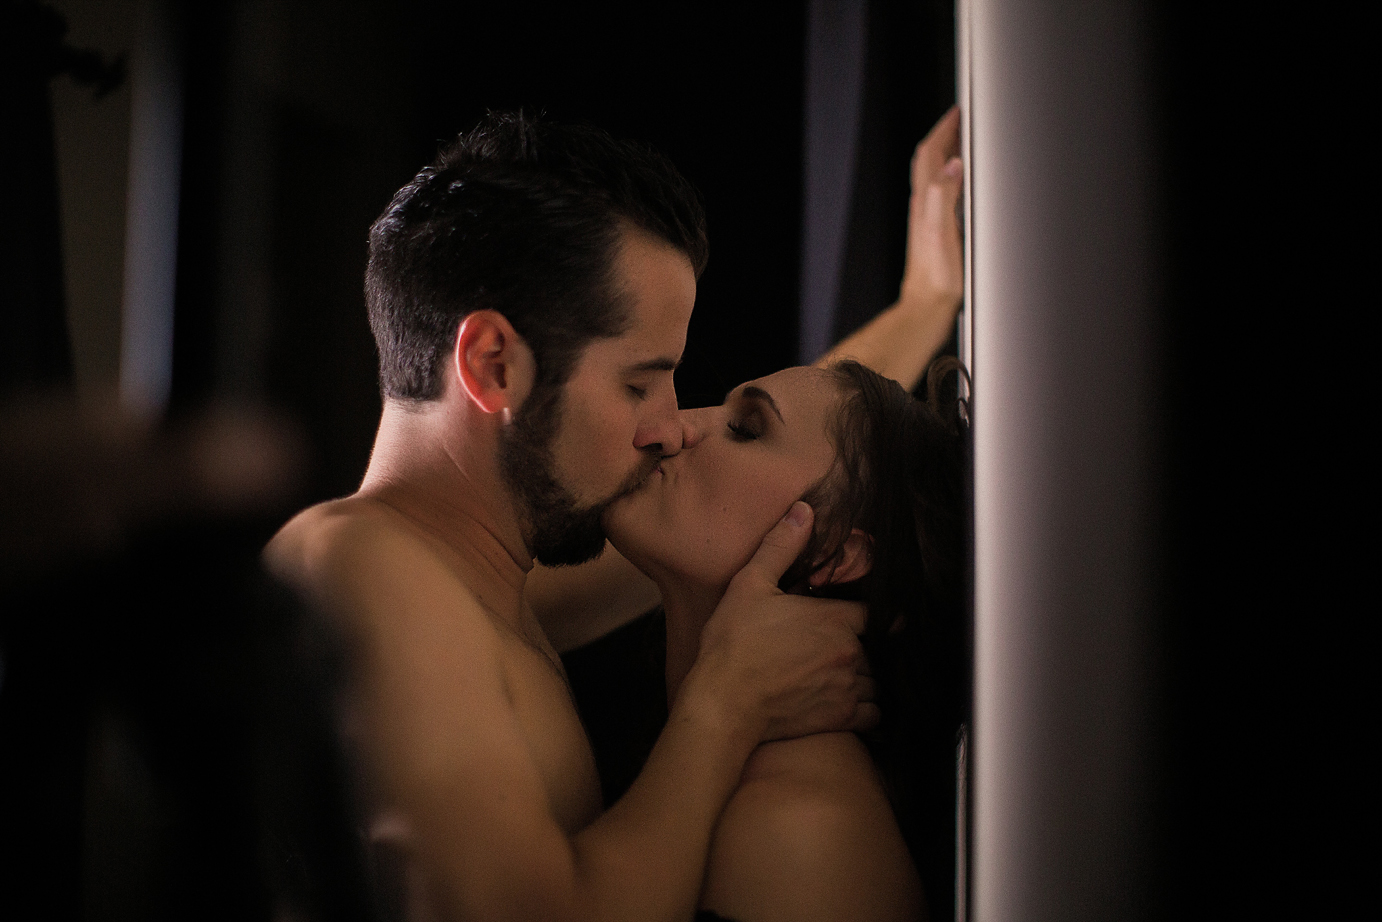 oc-couples-boudoir-studio-husband-and-wife-sexy-photoshoot-passionate-kissing-hallway.jpg